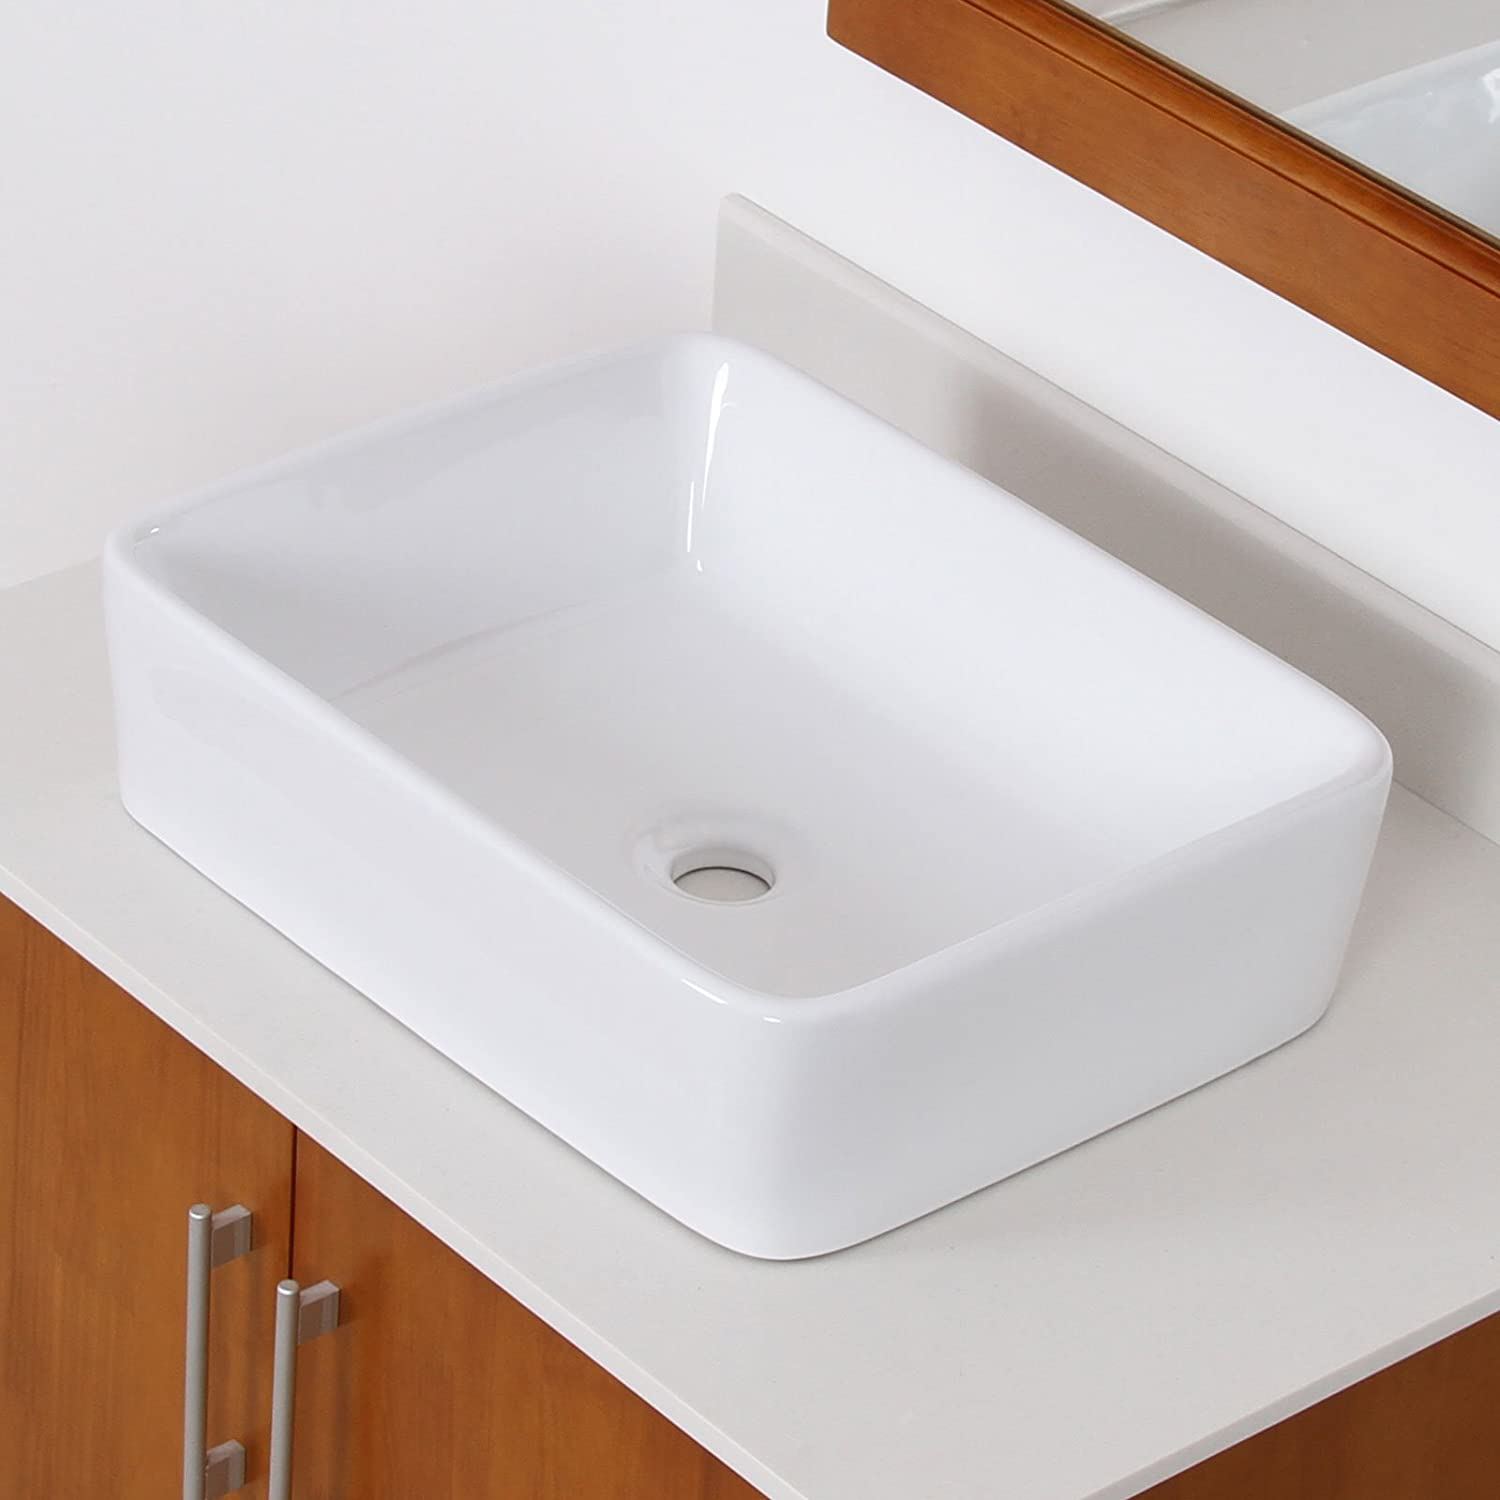 ELITE Bathroom White Porcelain Ceramic Vessel Sink Basin